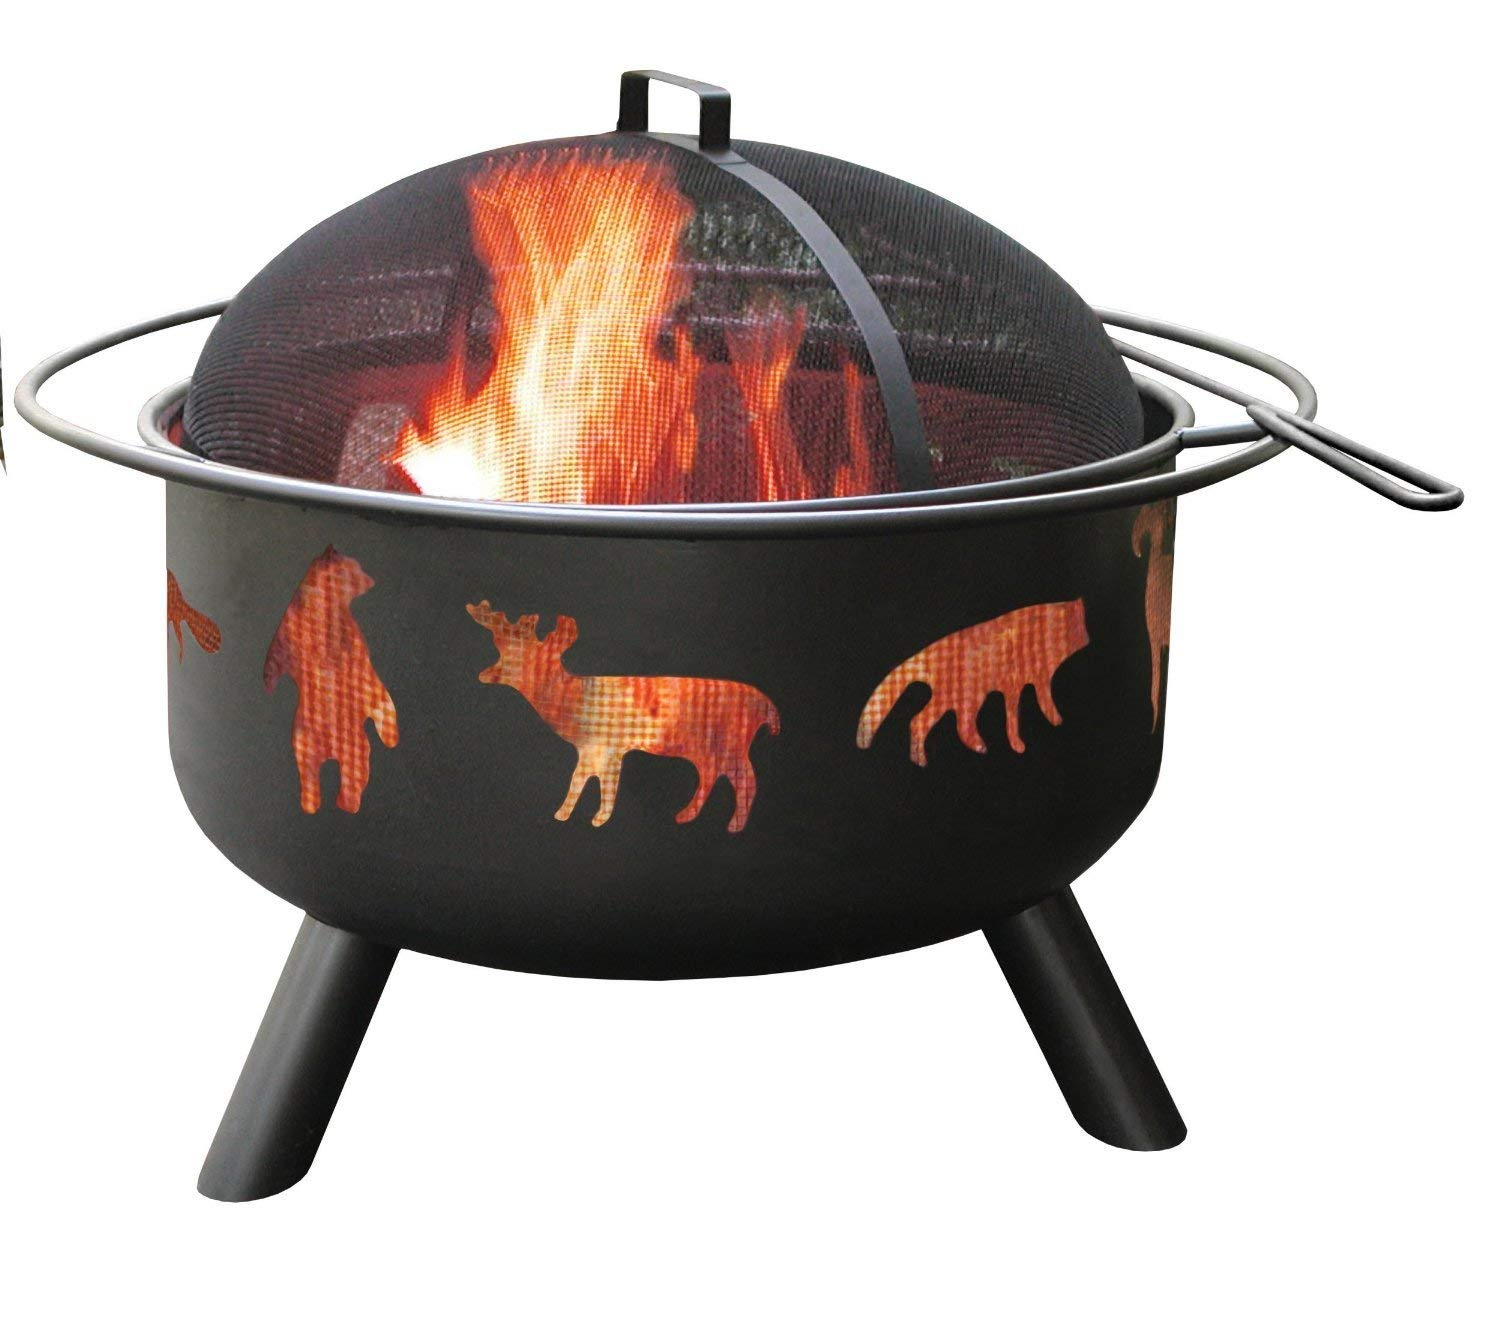 chrsitmas-gifts-for-parents-fire-pit